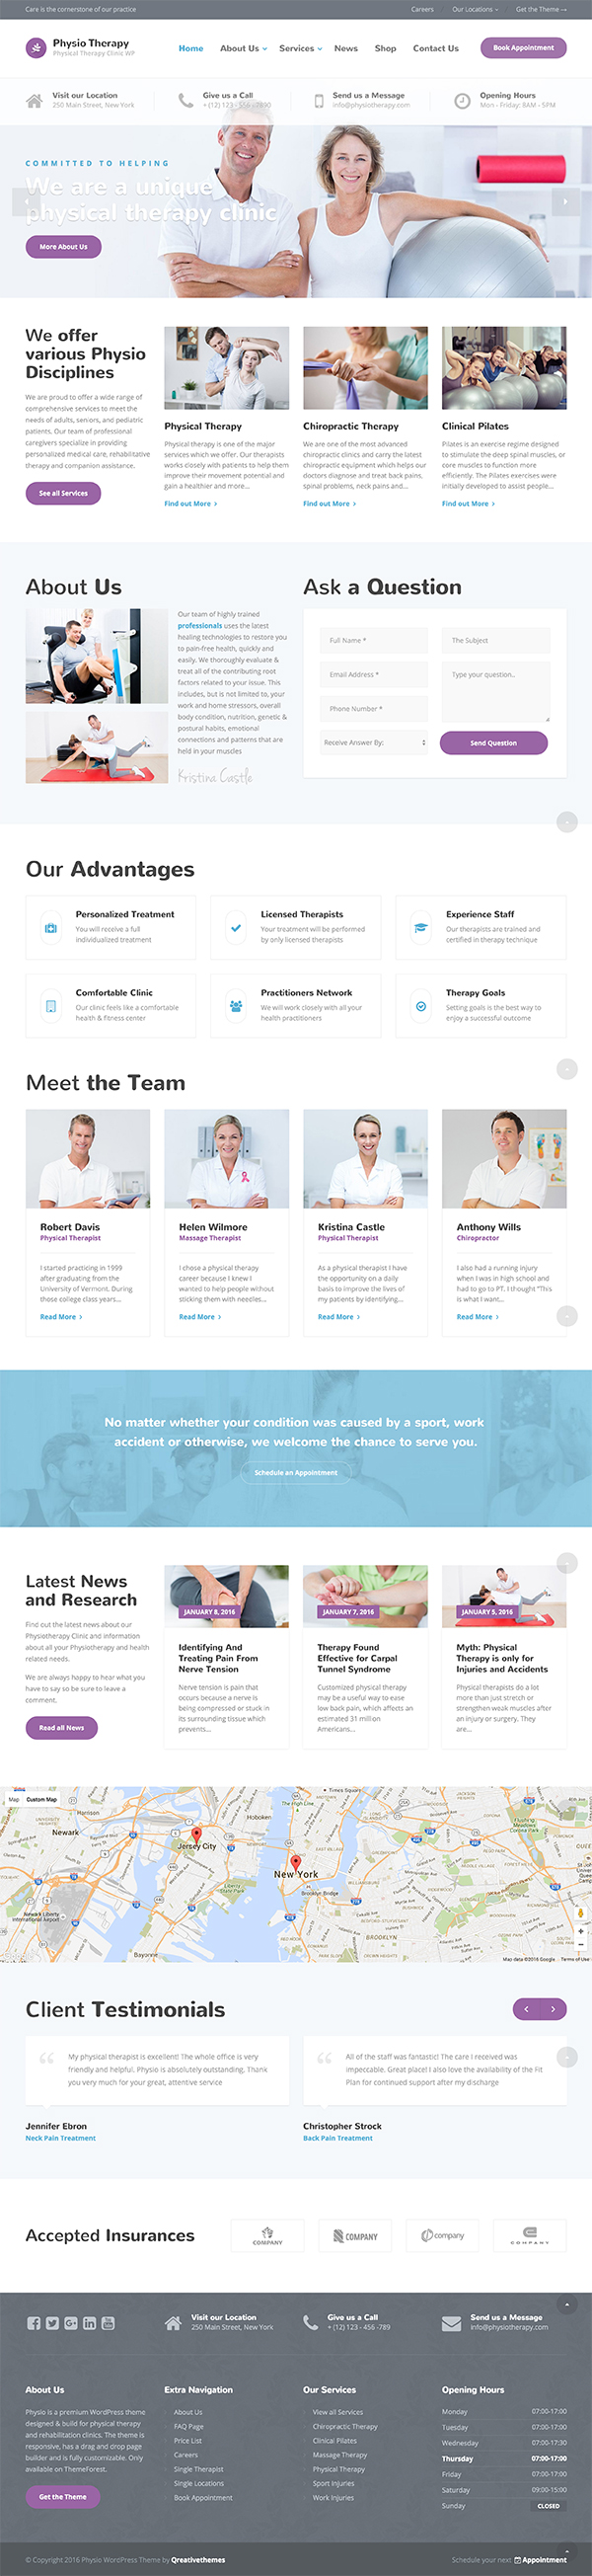 13 Physio - Physical Therapy & Medical Clinic WP Theme